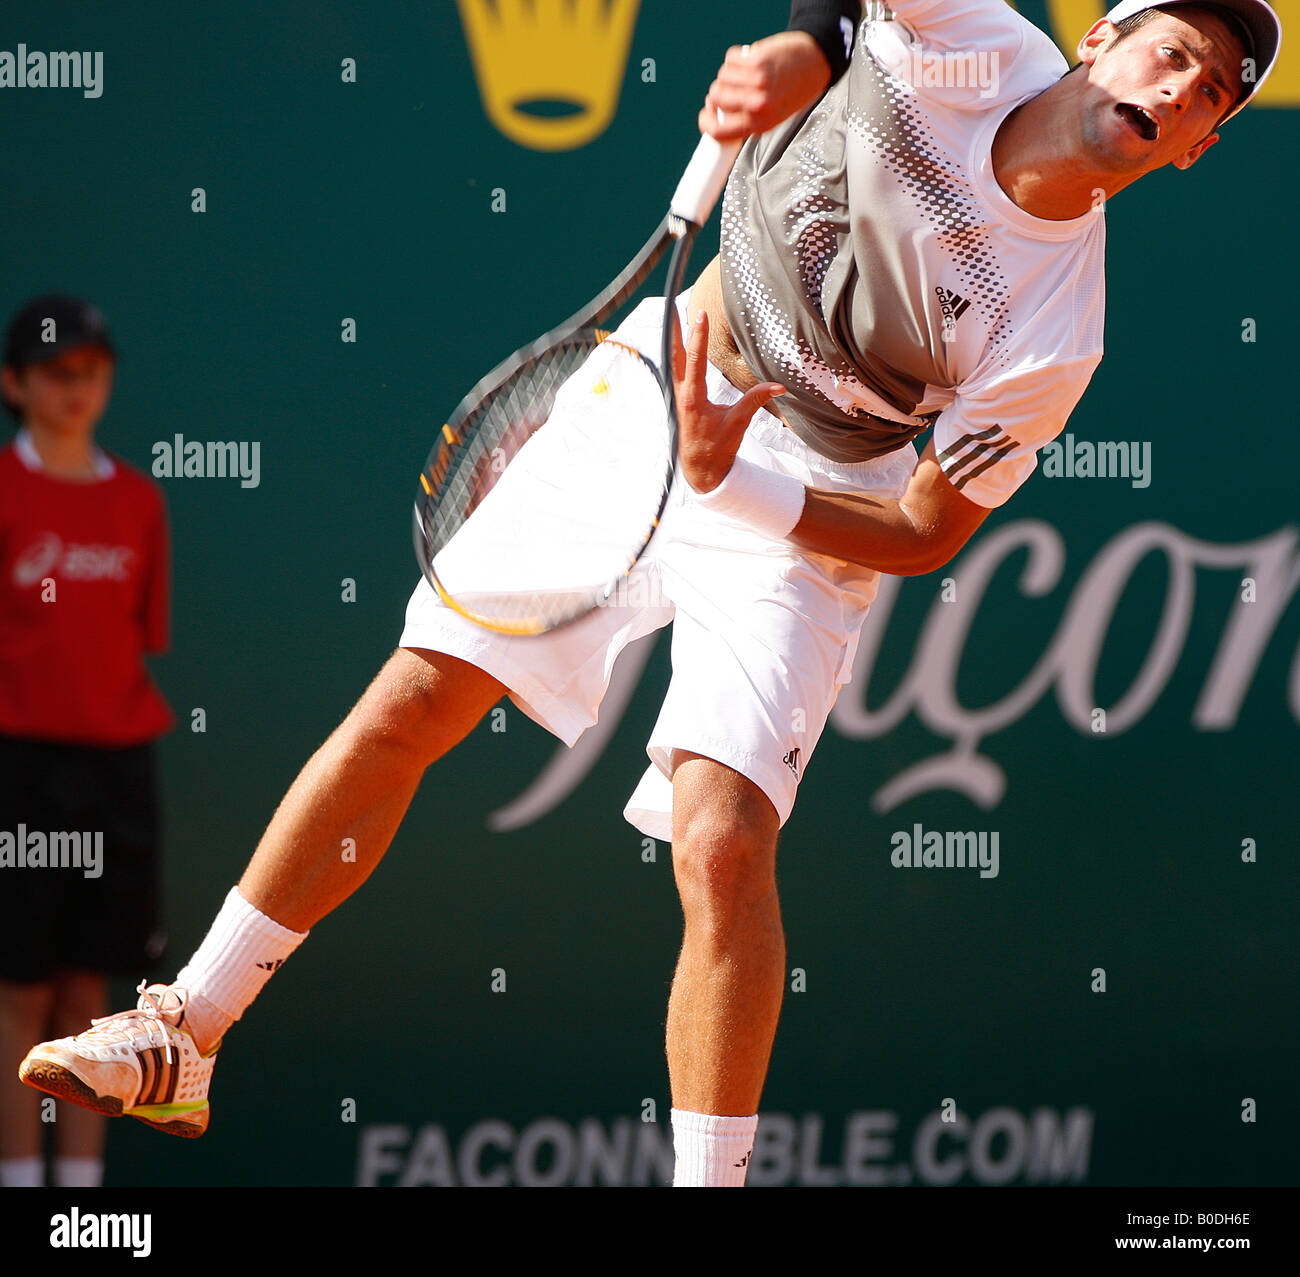 Novak Djokovic  in action at the ATP masters. - Stock Image